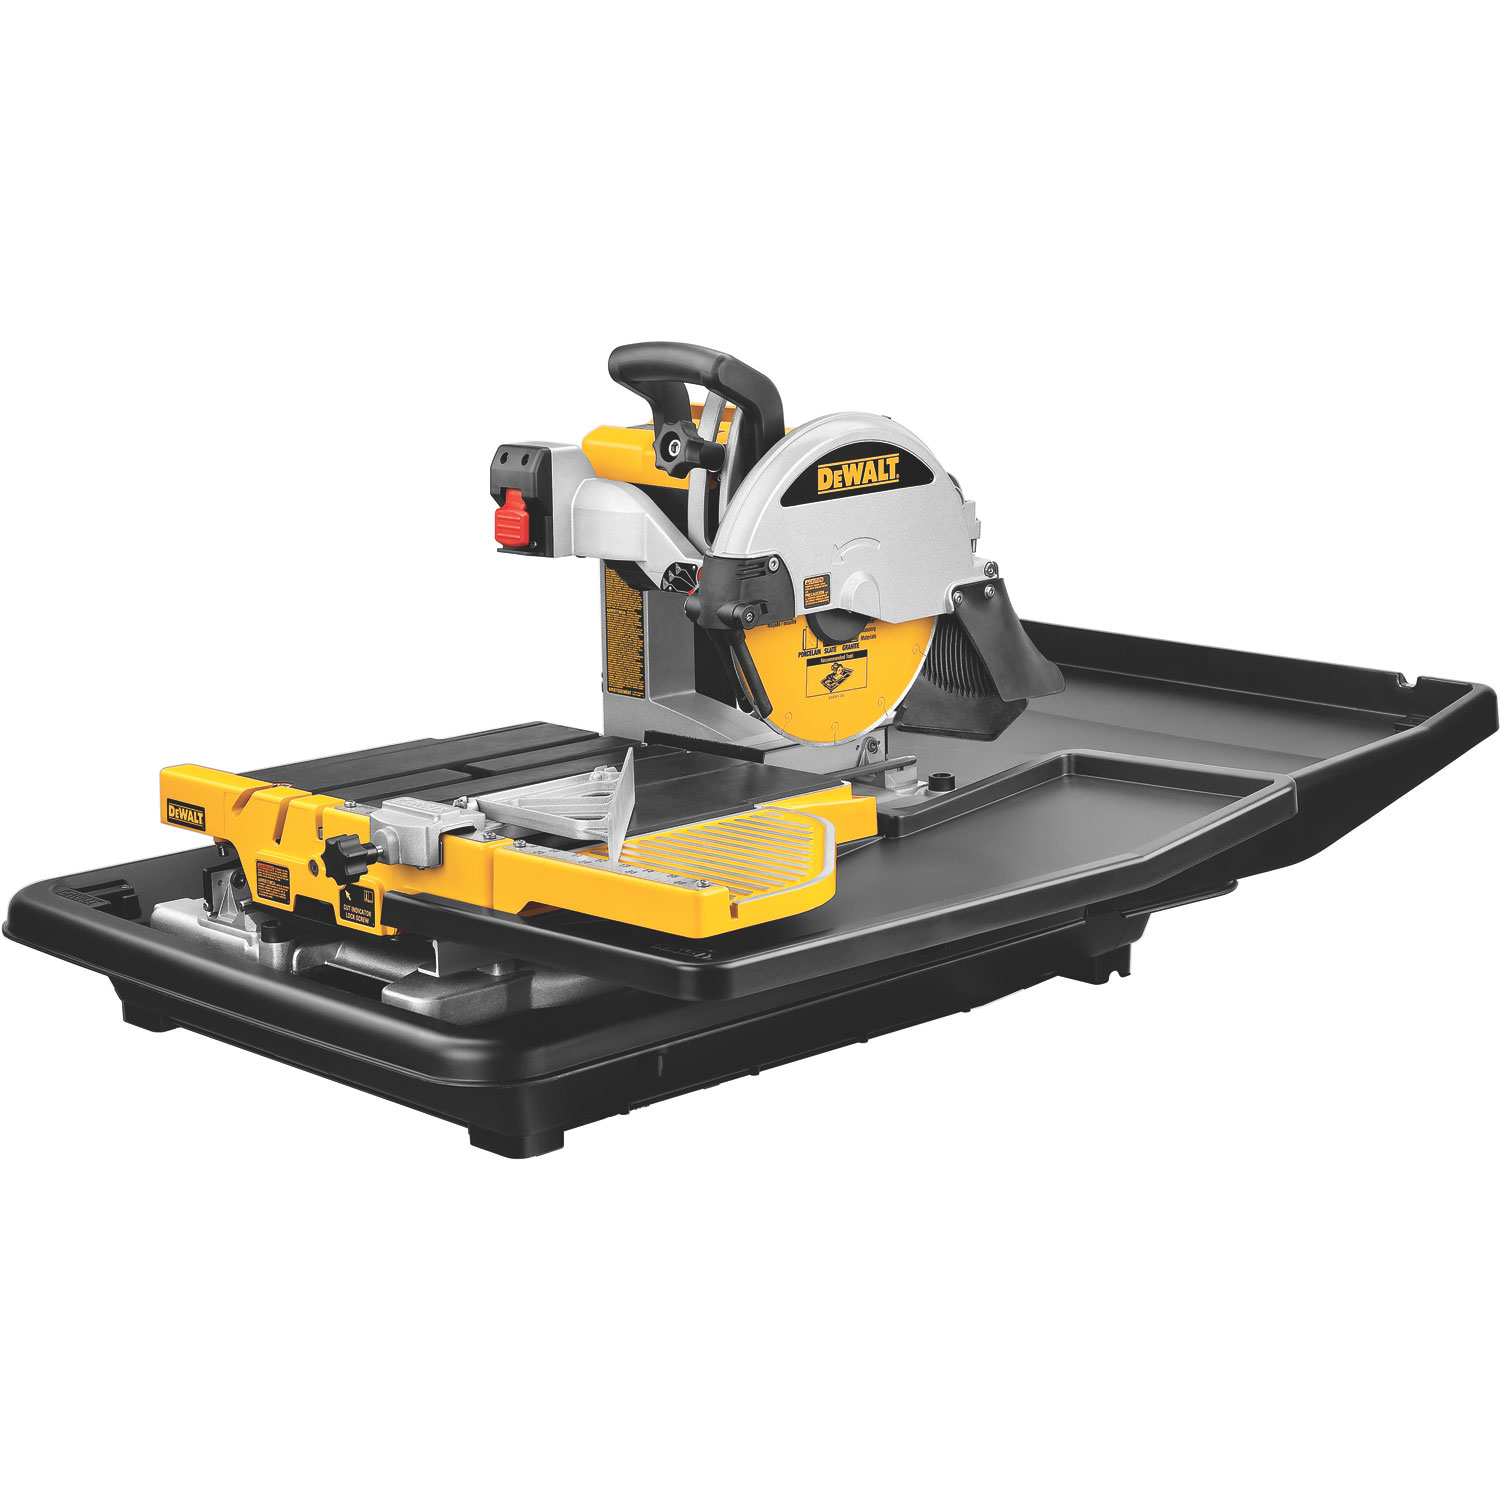 Dewalt D24000 1 5 Horsepower 10 Inch Wet Tile Saw Power